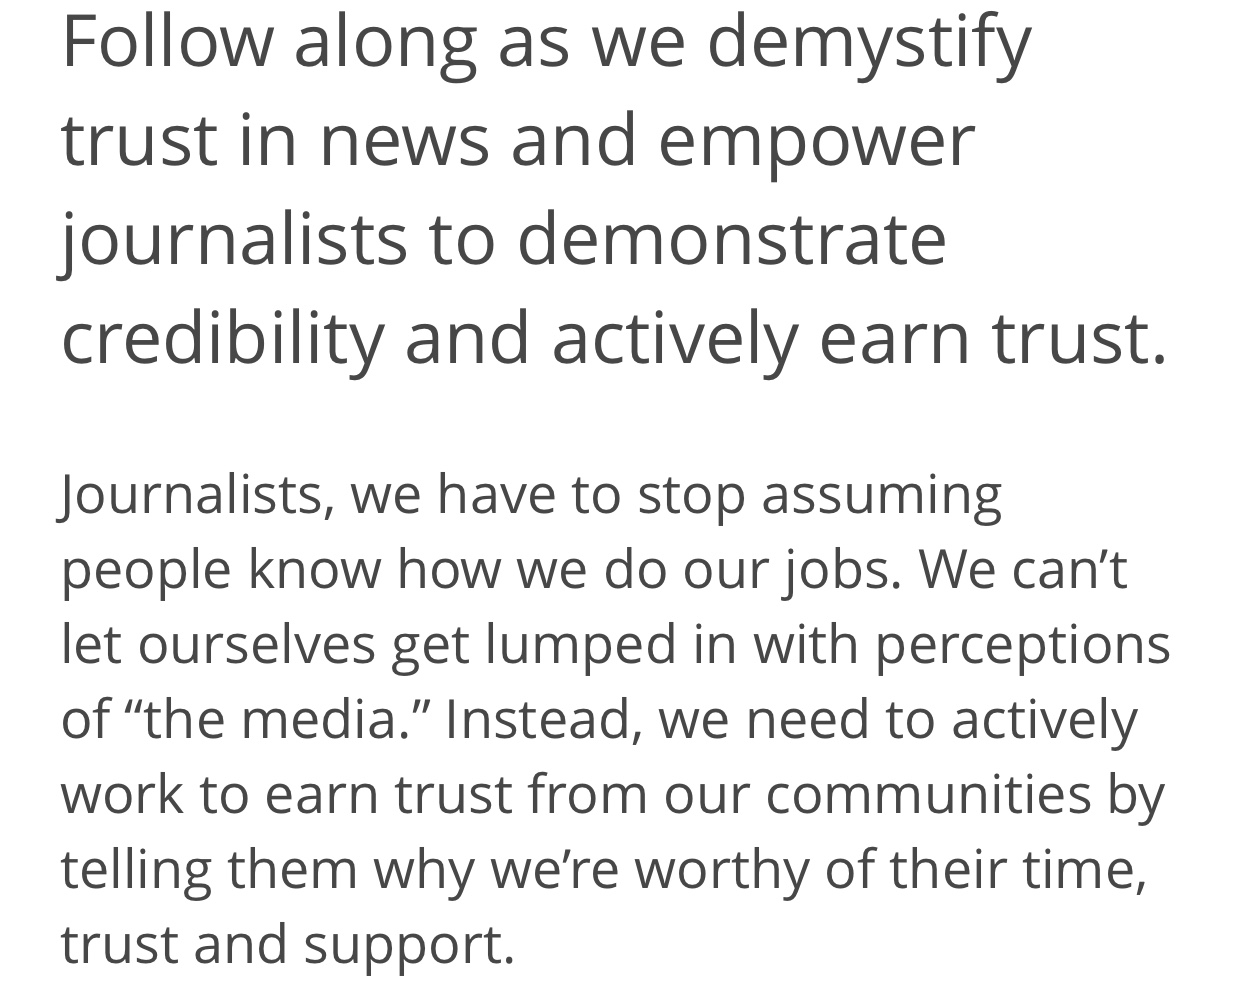 "A statement from Trusting News' homepage: ""Follow along as we demystify trust in news and empower journalists to demonstrate credibility and actively earn trust. Journalists, we have to stop assuming people know how we do our jobs. We can't let ourselves get lumped in with perceptions of ""the media."" Instead, we need to actively work to earn trust from our communities by telling them why we're worth of their time, trust and support."""